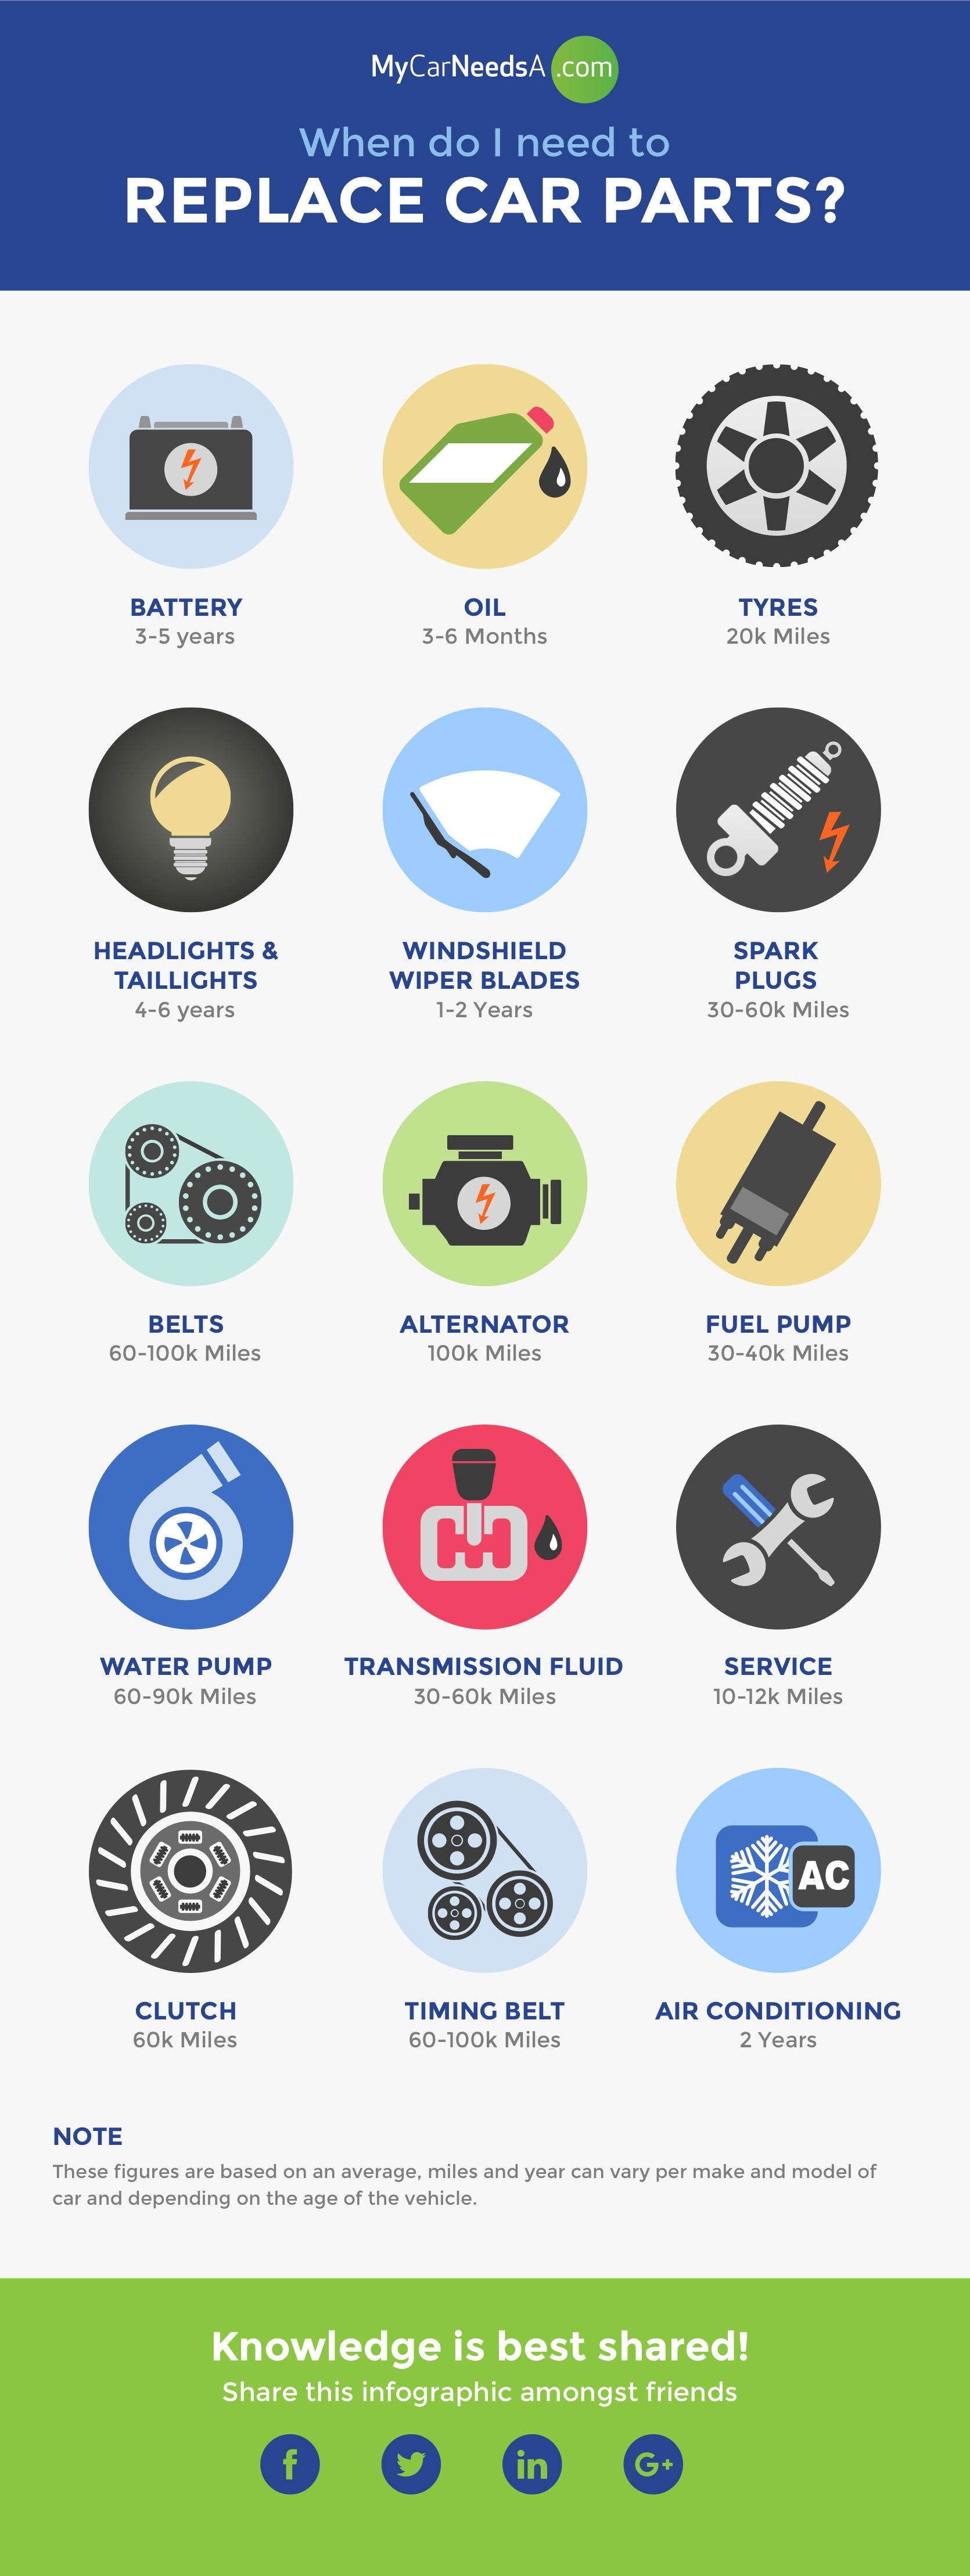 When To Replace Car Parts